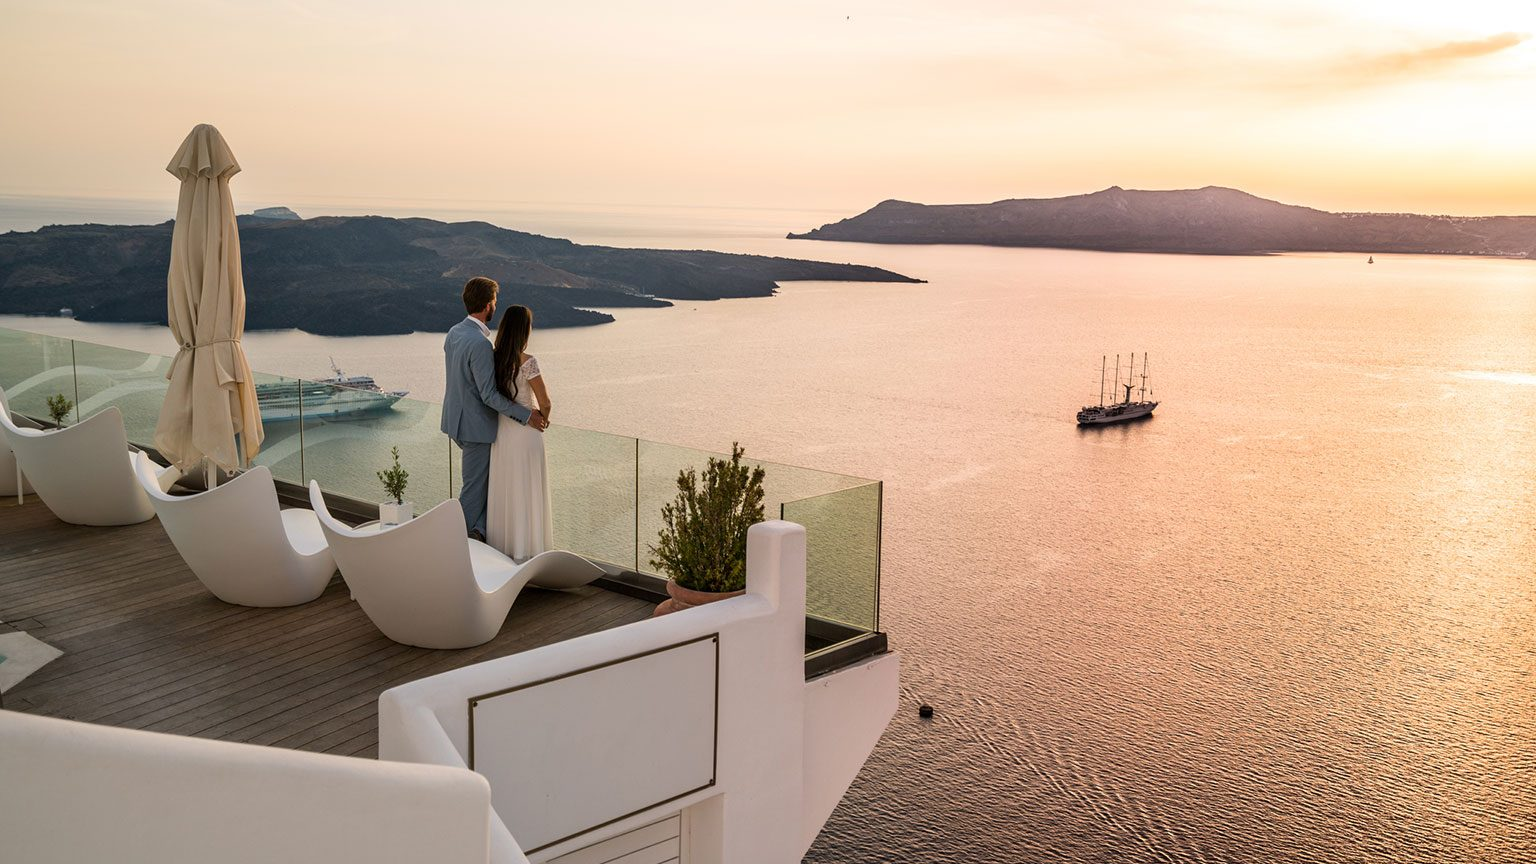 Couple on balcony overlooking water in Greece at sunset